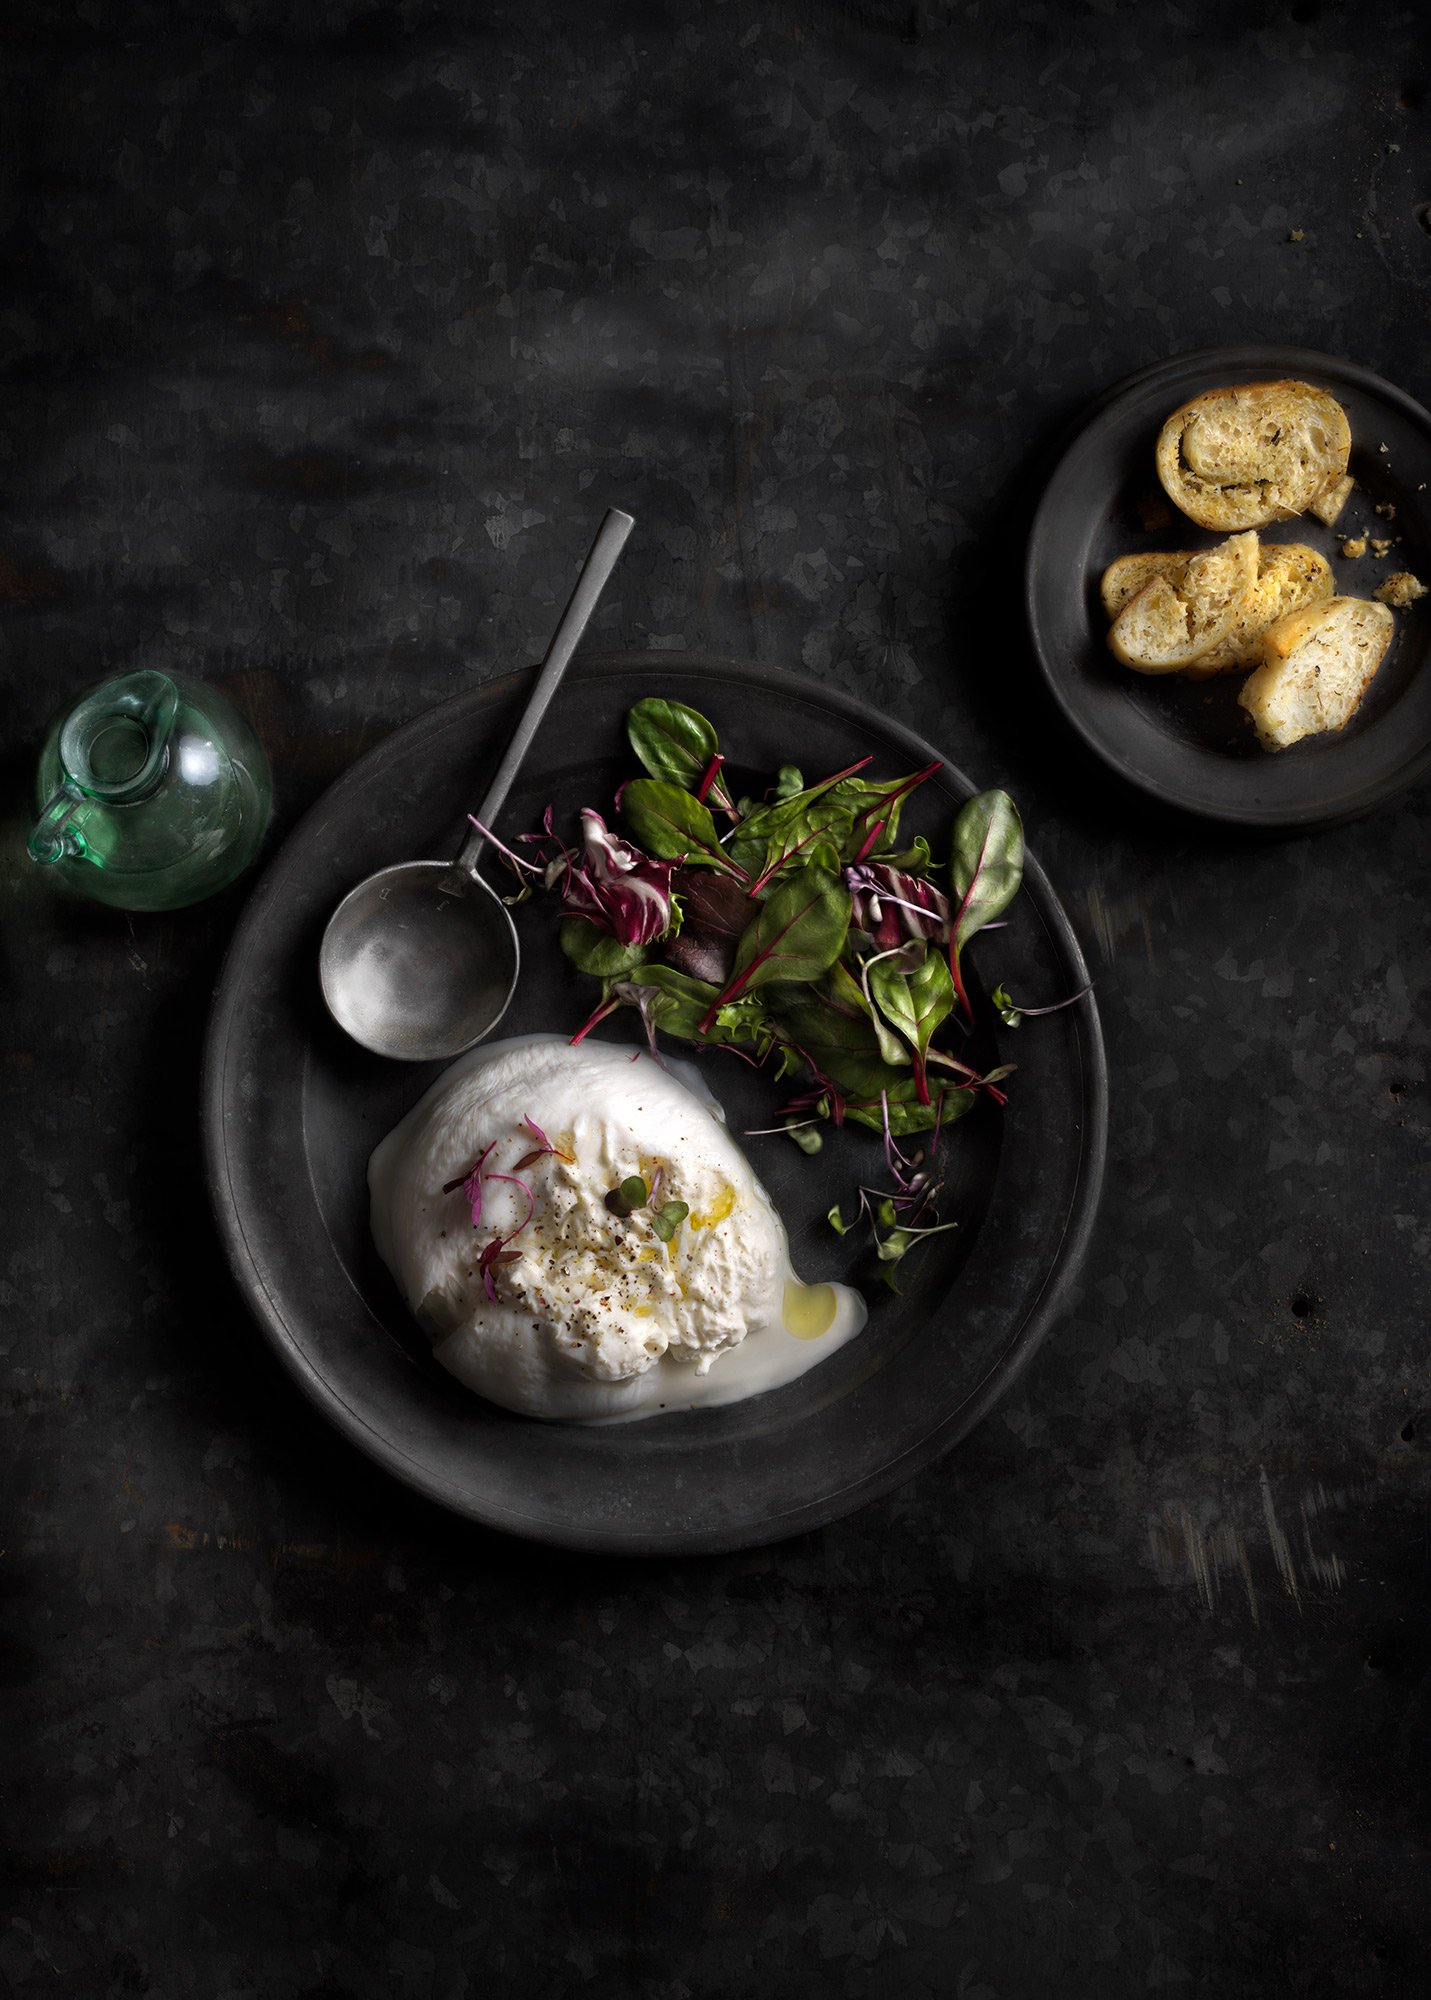 Burrata & Greens Photographed by Boston photographer Scott Goodwin